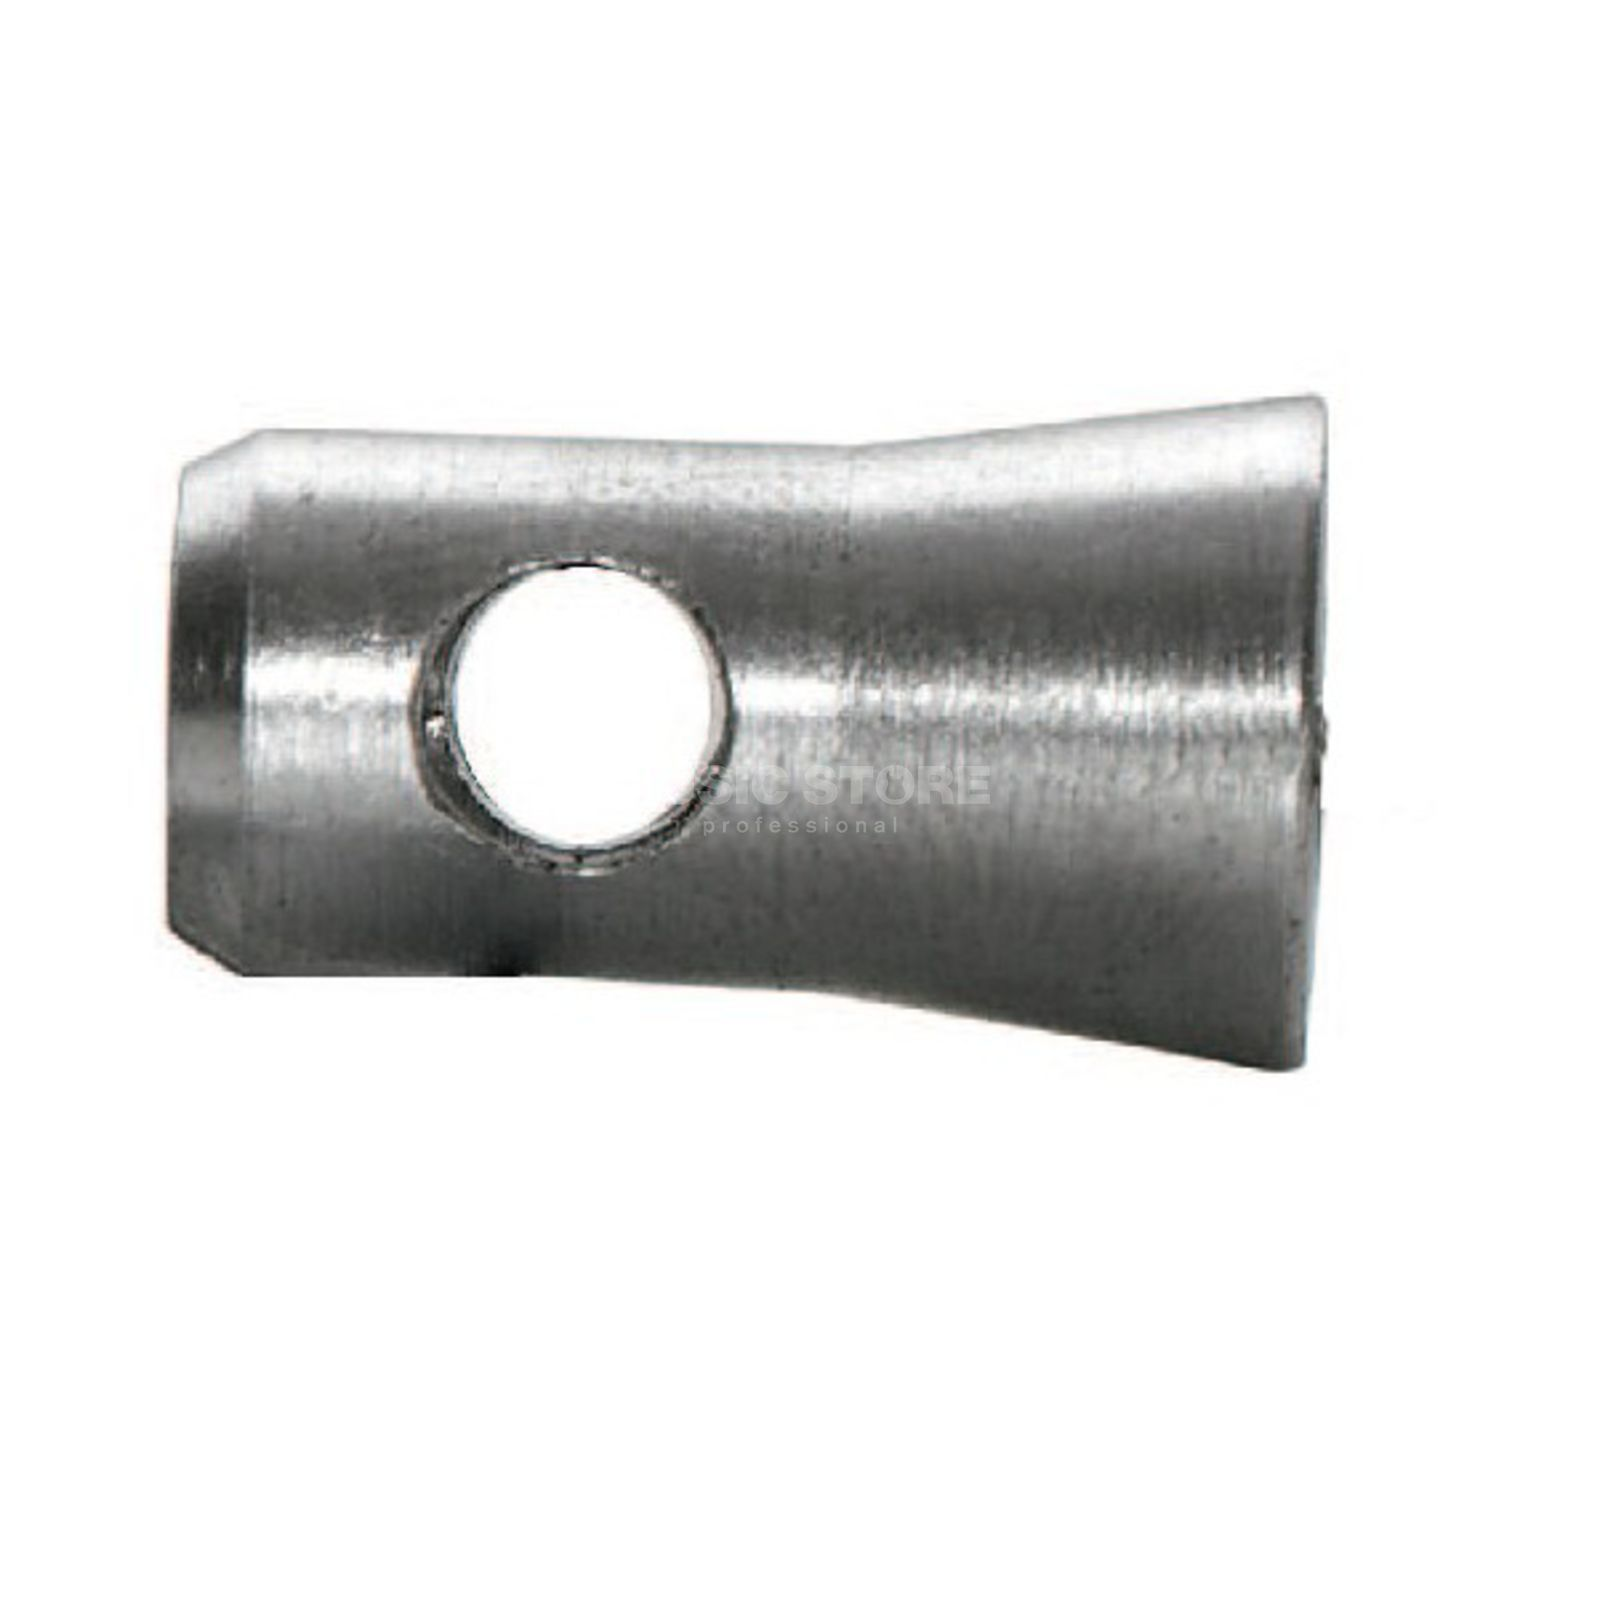 DURATRUSS DT 14 half conical connector  Produktbild